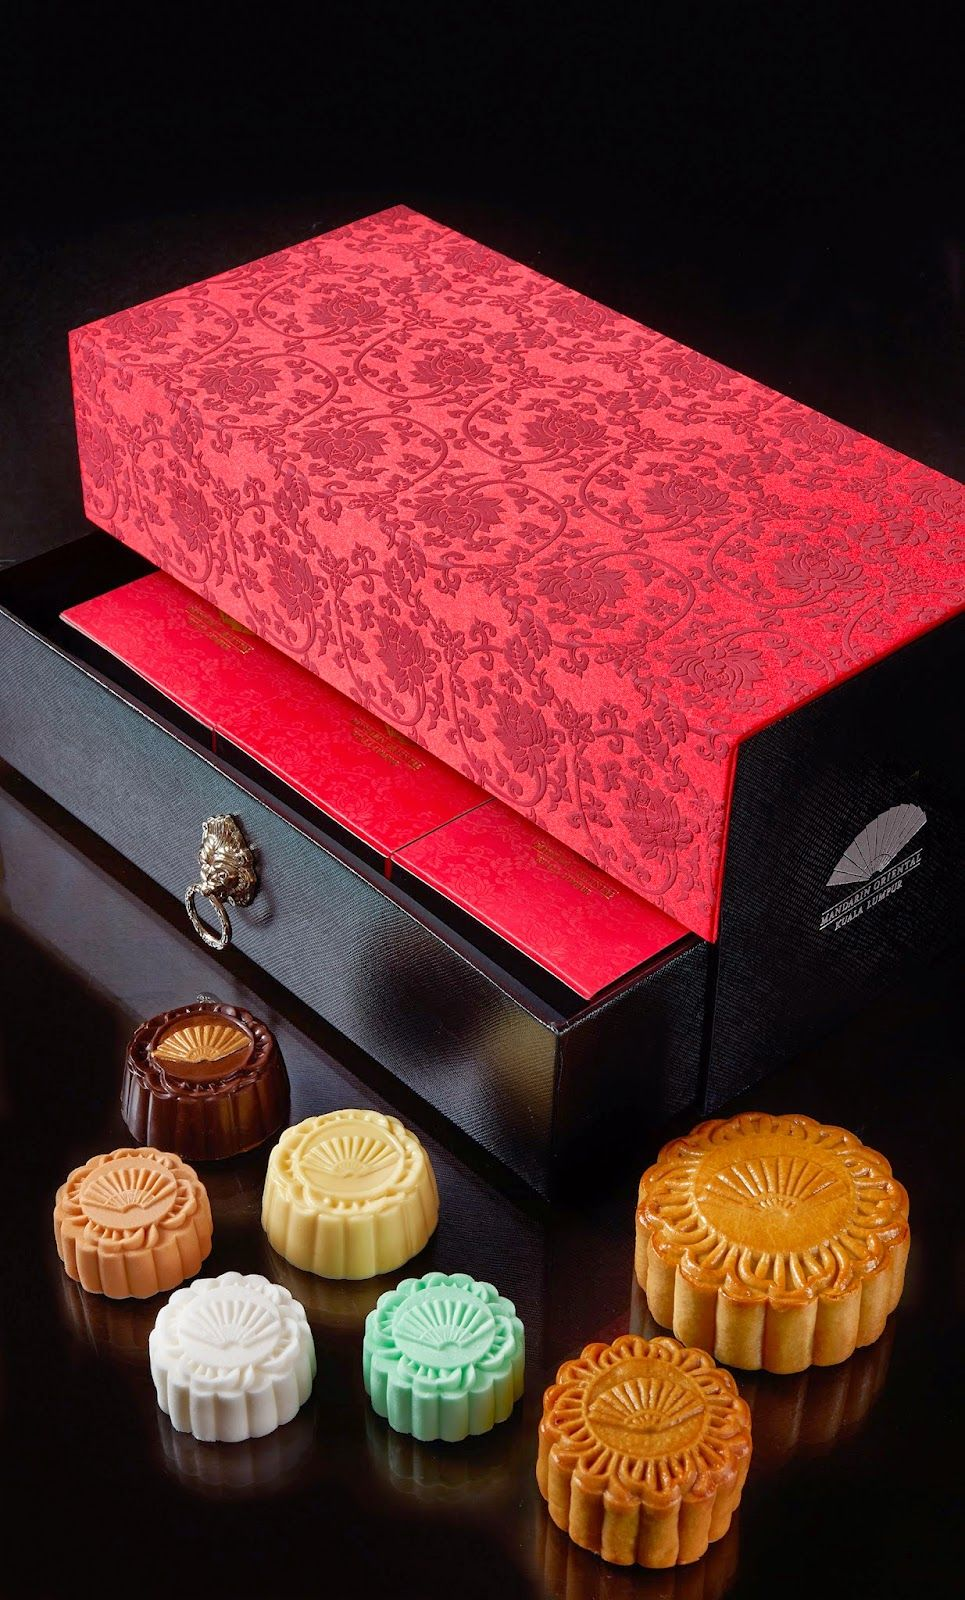 Kee Hua Chee Live Mooncakes From Mandarin Oriental Are The Must Haves For Mid Autumn Festival Now Selling In Moon Cake Mid Autumn Festival Mandarin Oriental